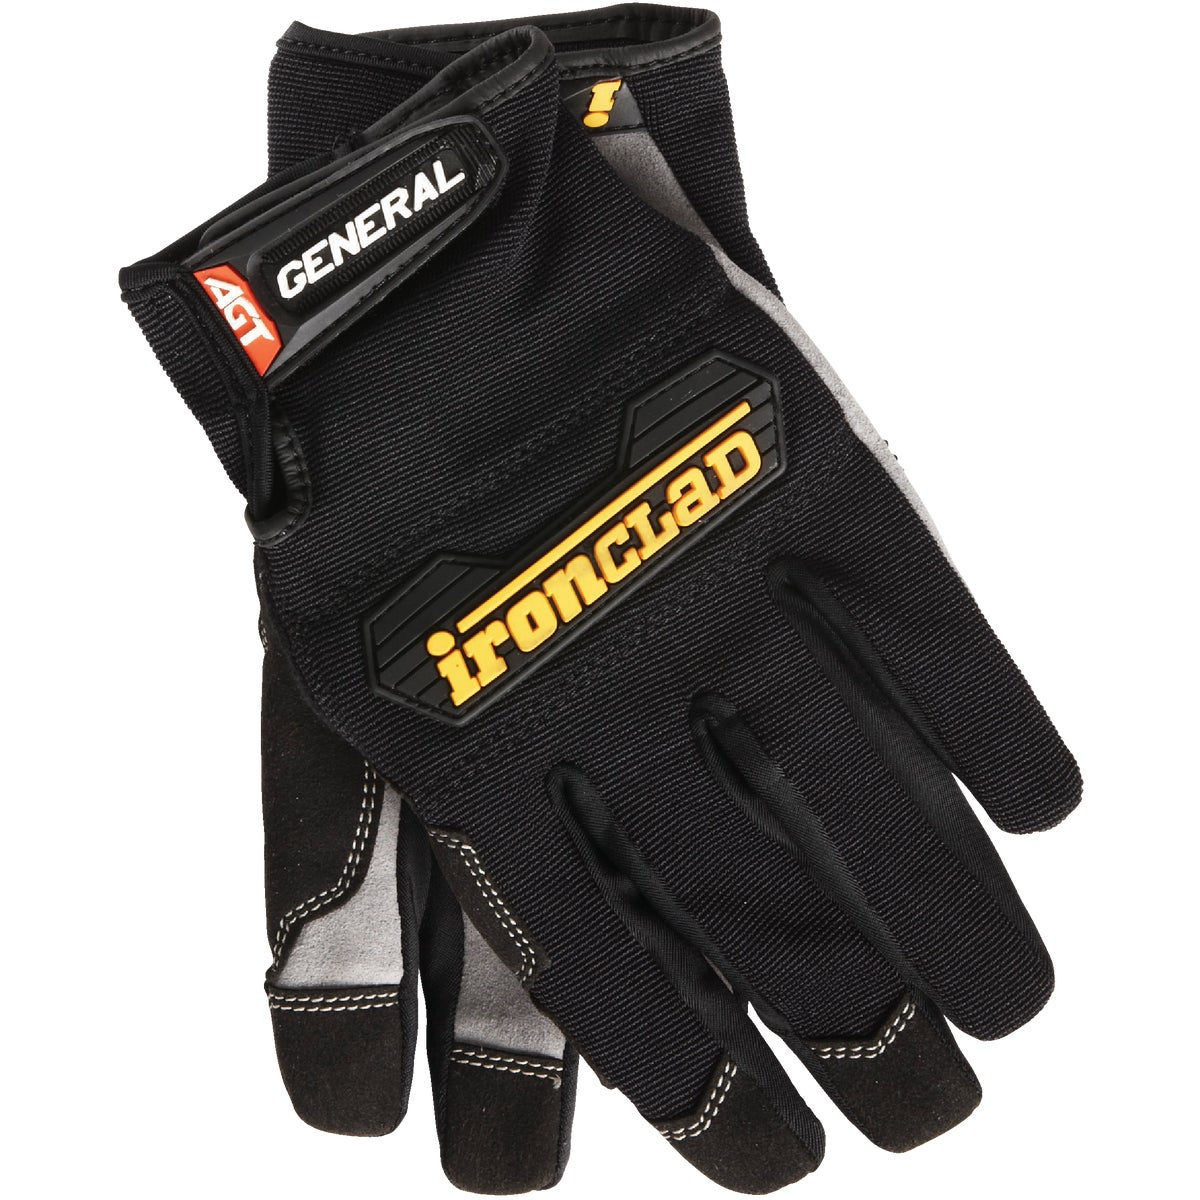 LRG GEN UTILITY GLOVE - GUG2-04-L by Ironclad Performance